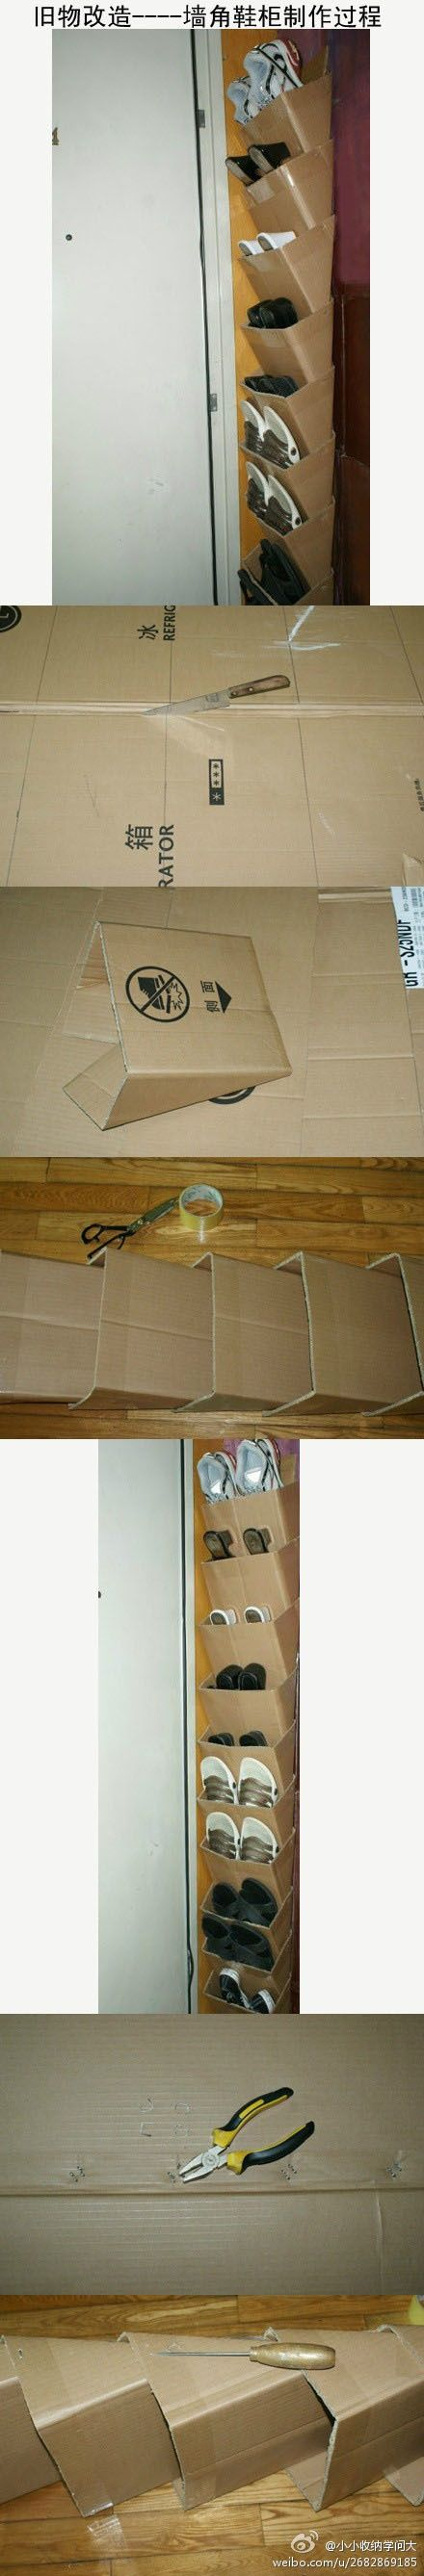 diy carton shoes organizer diy ideas karton basteln und pappe. Black Bedroom Furniture Sets. Home Design Ideas